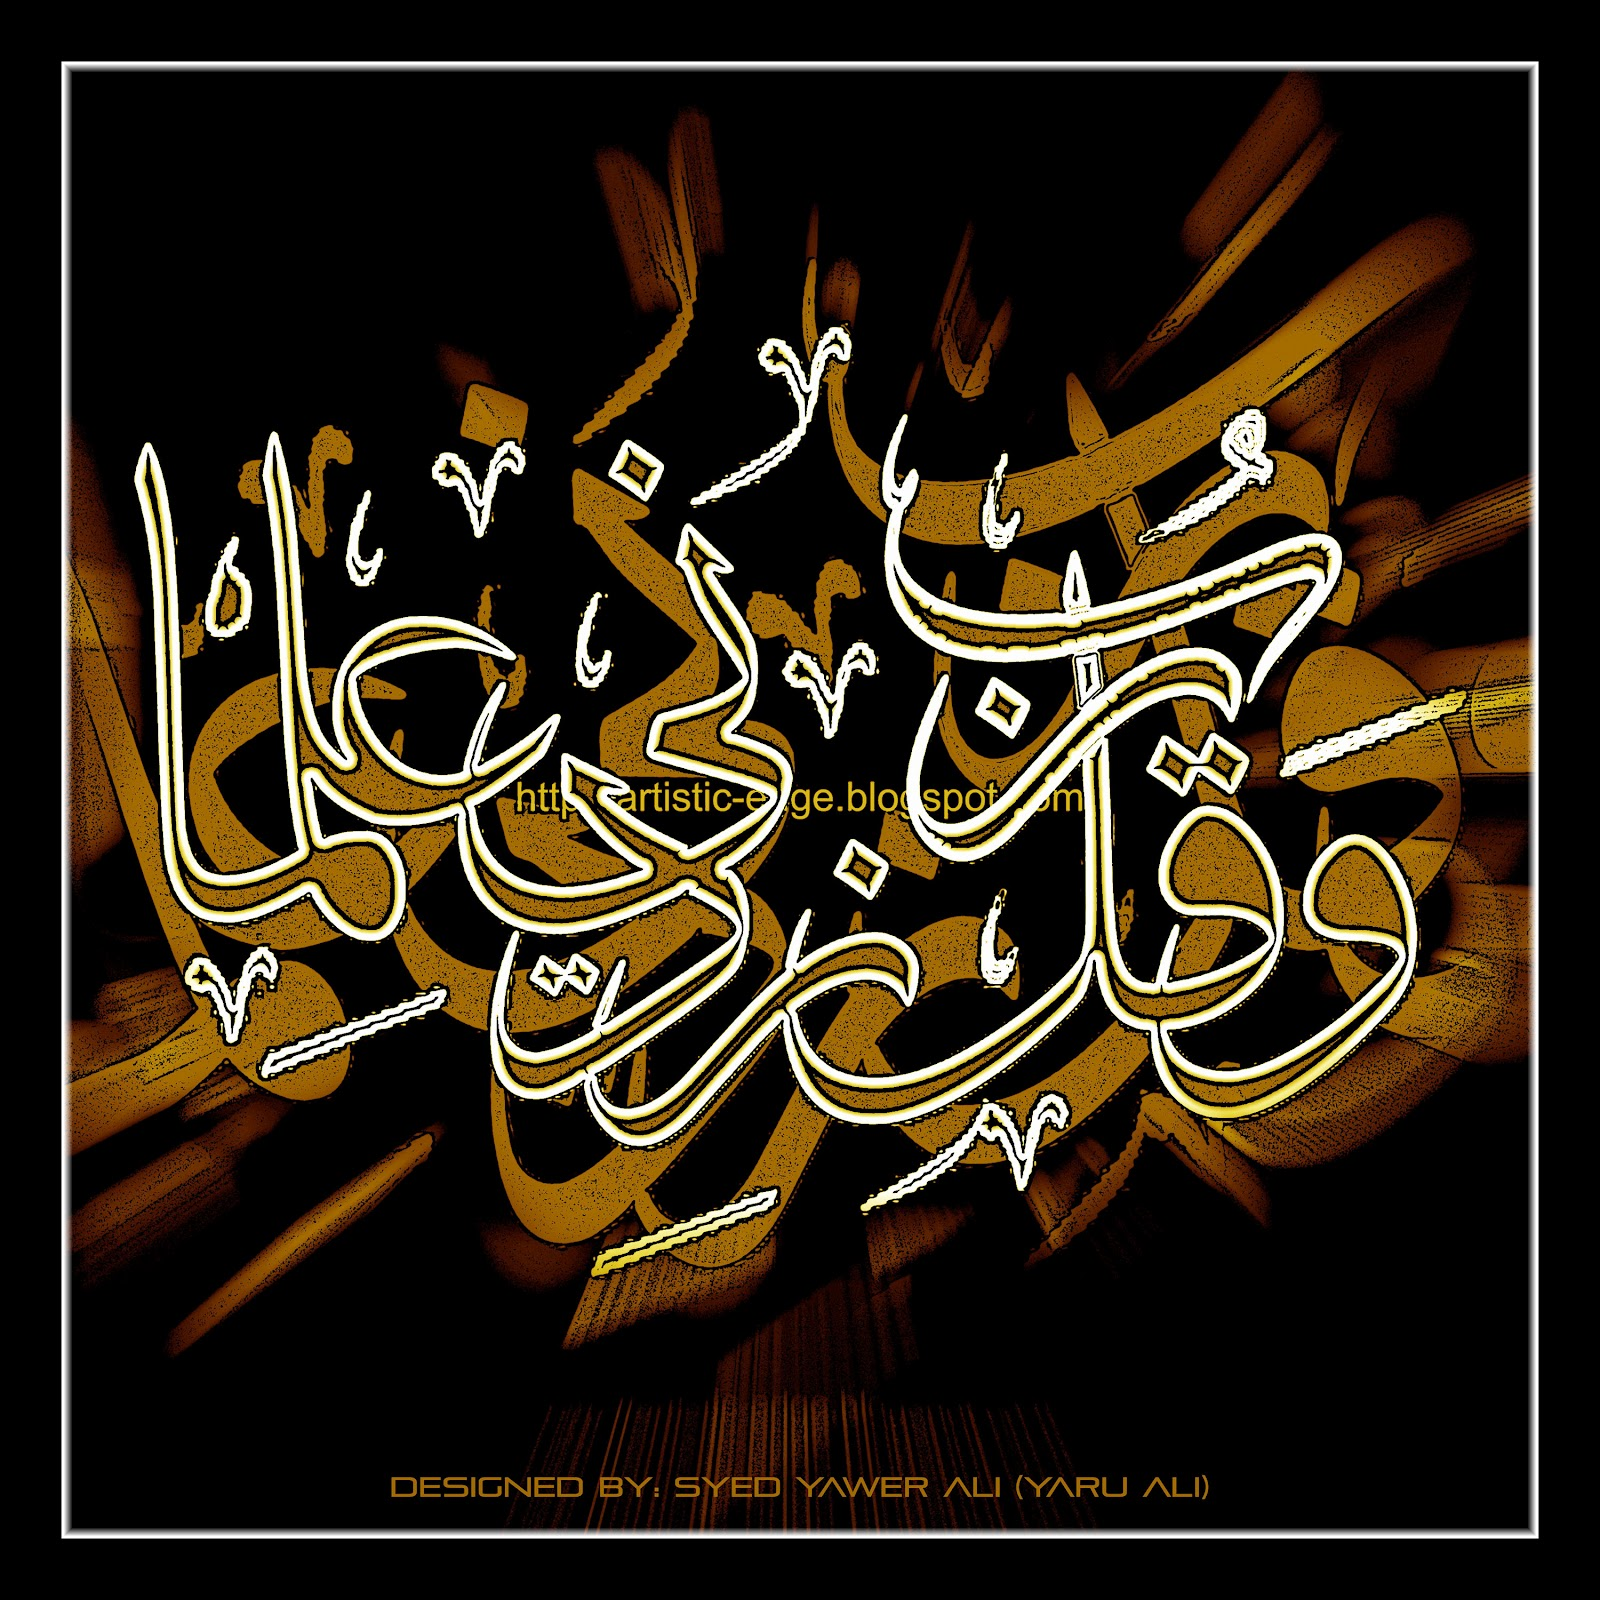 Wallpaper qurani ayat wallpapers Calligraphy ayat